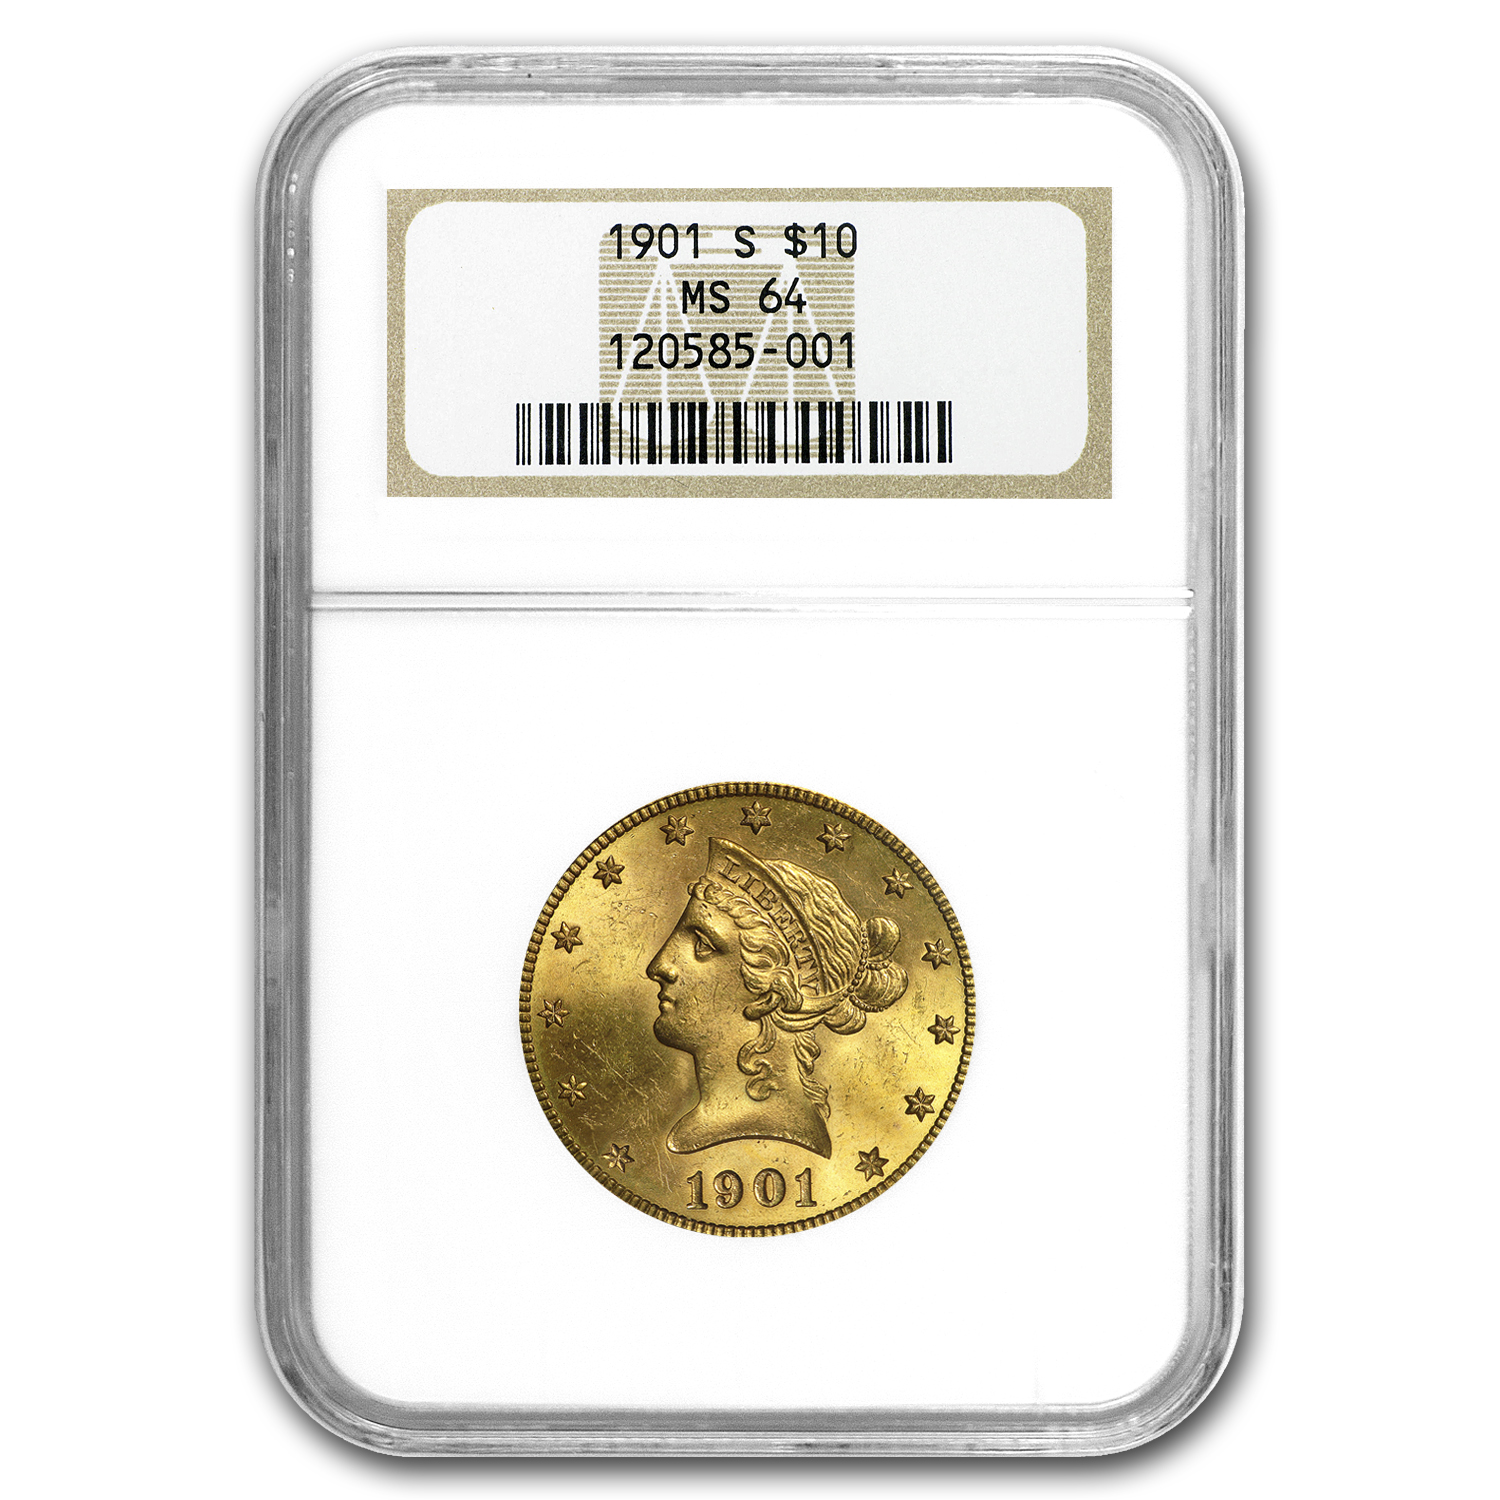 1901-S $10 Liberty Gold Eagle MS-64 NGC